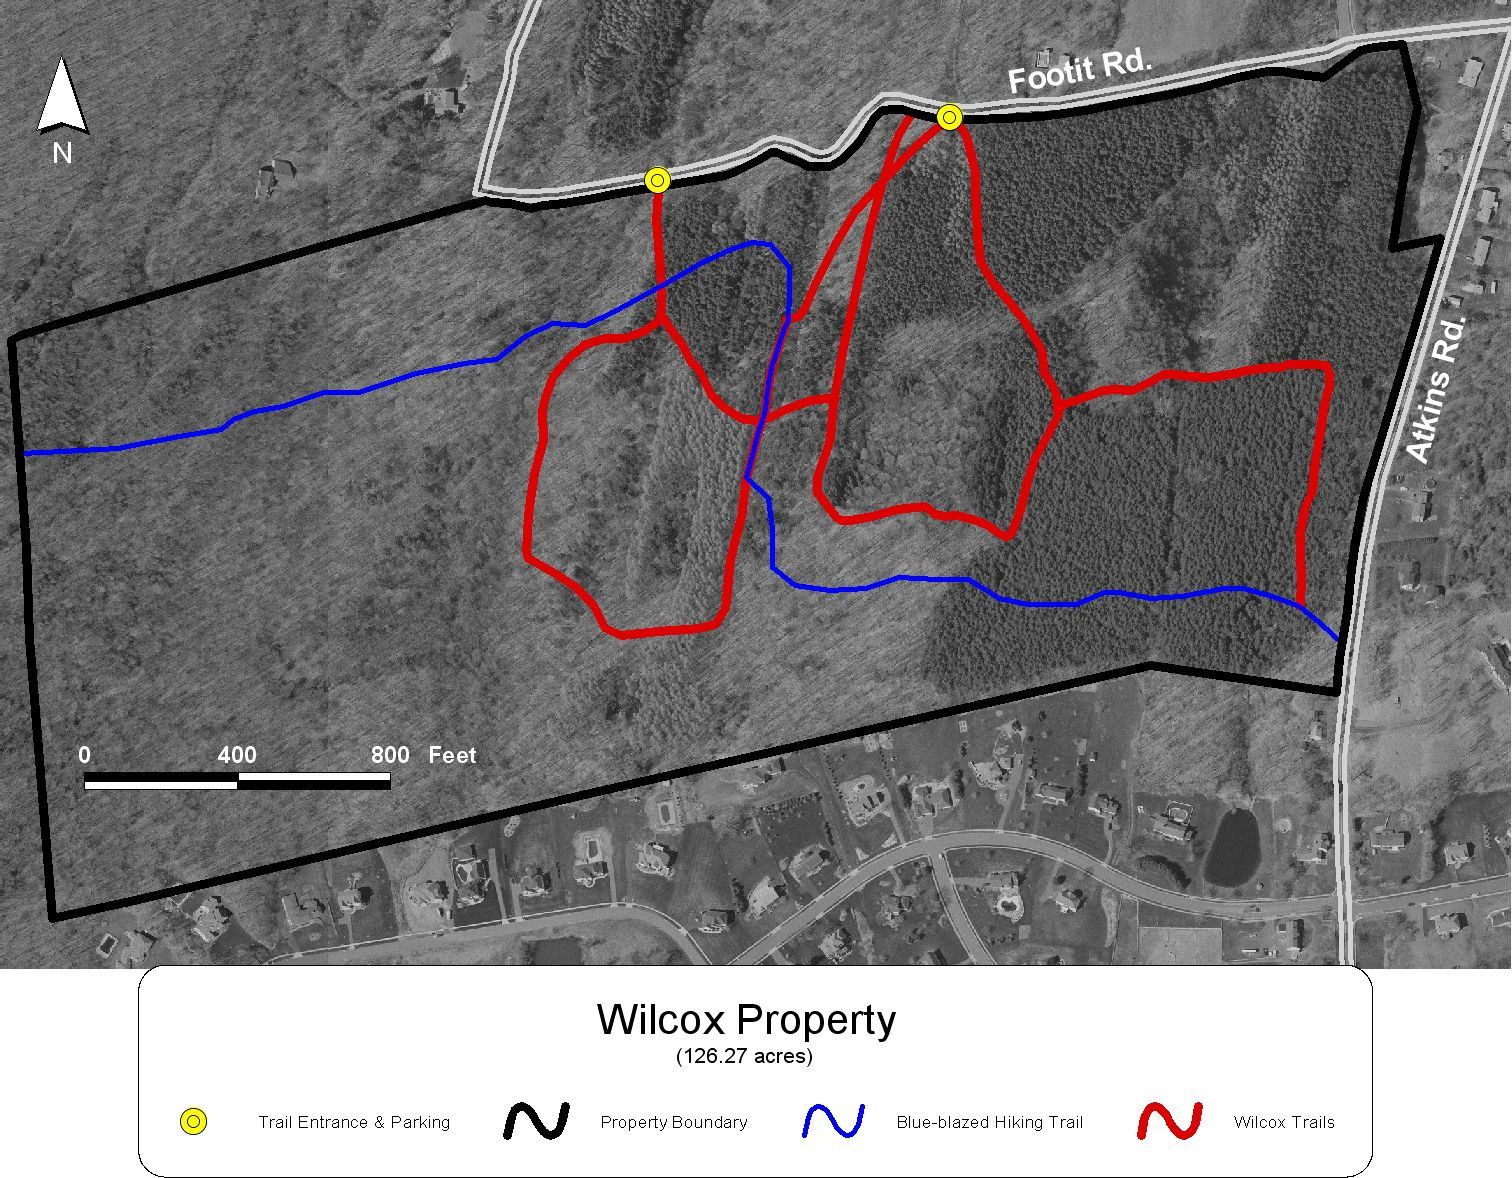 Wilcox Property Aerial Photo Map